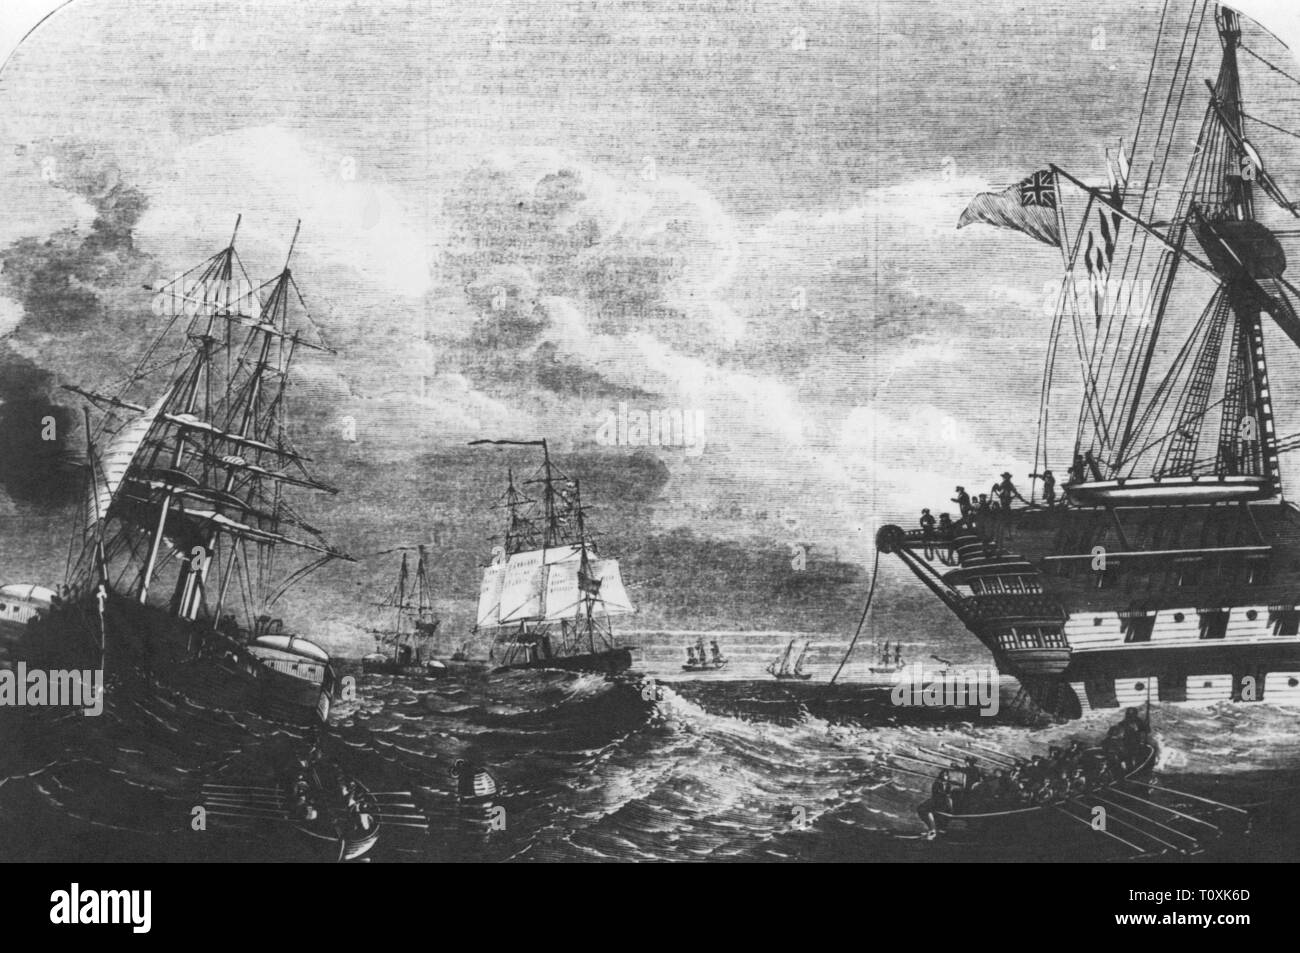 mail, telegraphy, Atlantic cable, laying 1857 - 1858, the ships HMS Agamemnon and USS Niagara begin with the laying, 1857, contemporary wood engraving, 'Illustrierte Zeitung', Leipzig, transatlantic communications cable, undersea cable, undersea cables, telegraph cable, laying, lay, lays, laid, lay cable, lay tiles, oversea connection, people, unroll, unrolling, navigation, Atlantic Ocean, Atlantic, USA, United States of America, Great Britain, 19th century, mail, post, ships, ship, begin, start, historic, historical, Additional-Rights-Clearance-Info-Not-Available - Stock Image